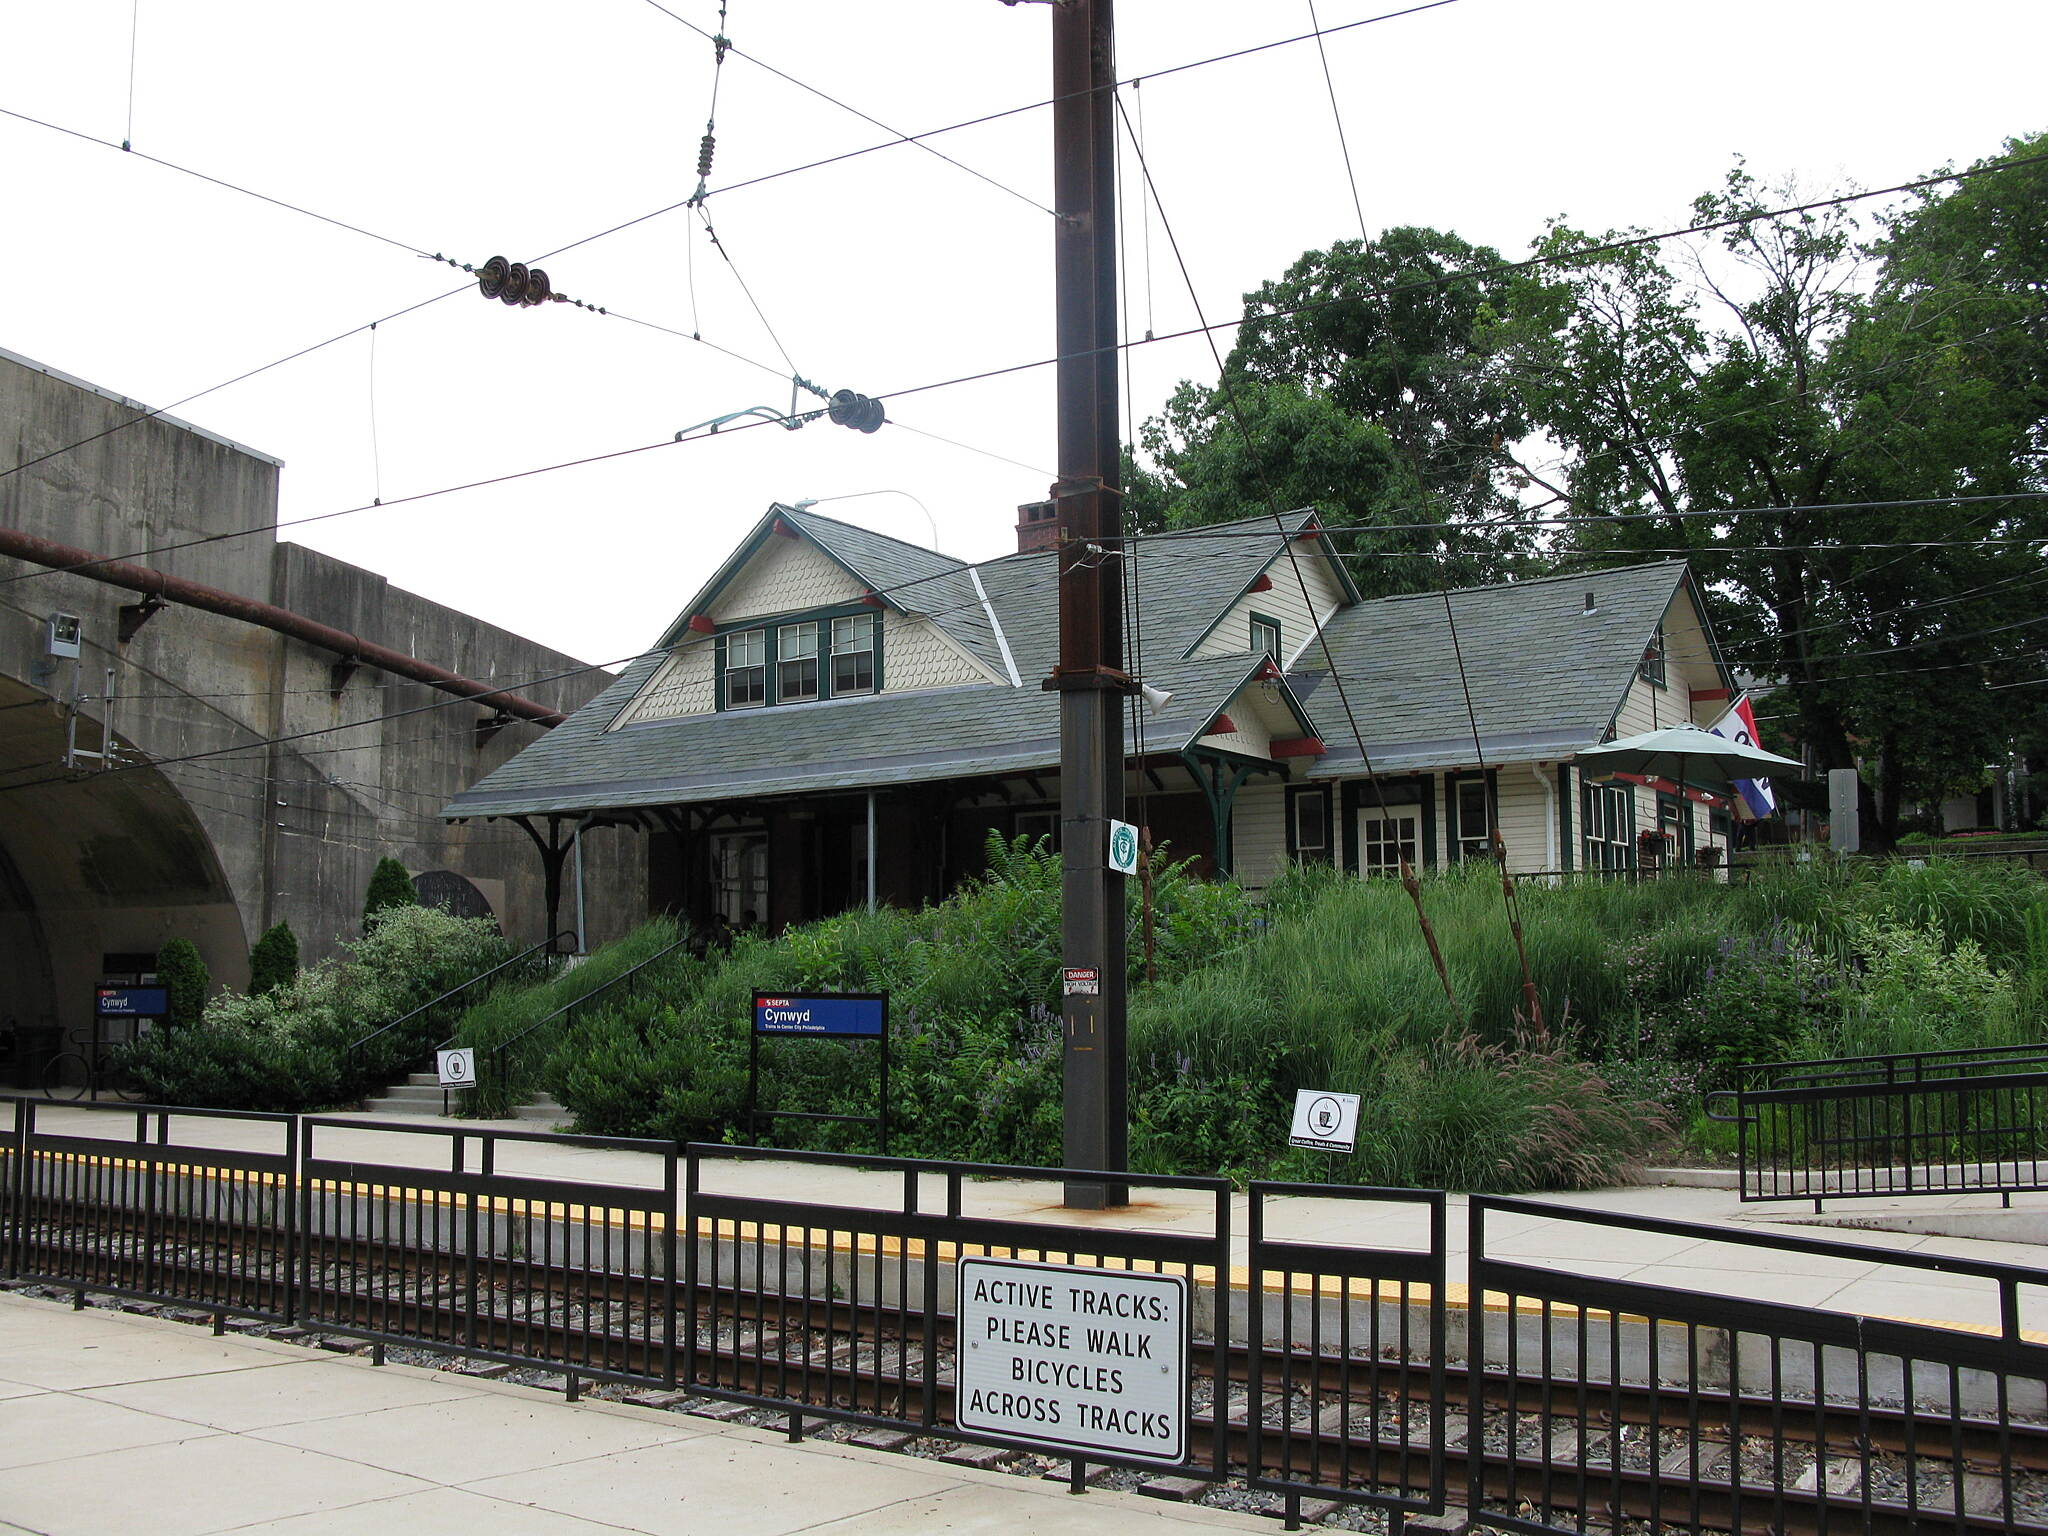 Cynwyd Heritage Trail Cynwyd Heritage Trail Cynwyd Station, seen across the tracks from the southern terminus of the trail. The station houses a cafe and ice cream shop, which is a welcome oasis in the summer heat. Taken June 2016.